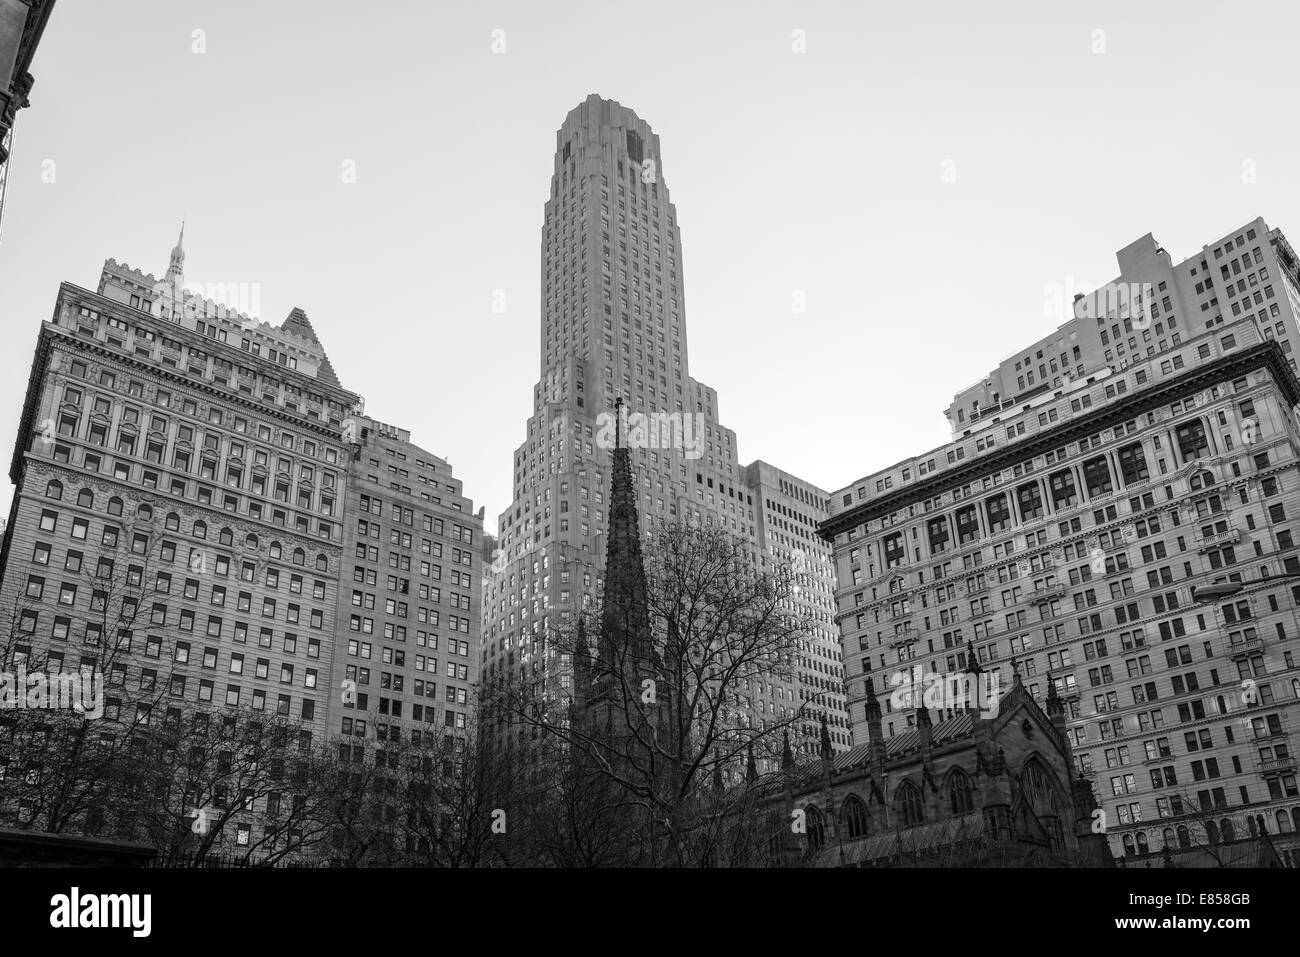 Trinity Church, Manhattan, New York City, New York, USA - Stock Image